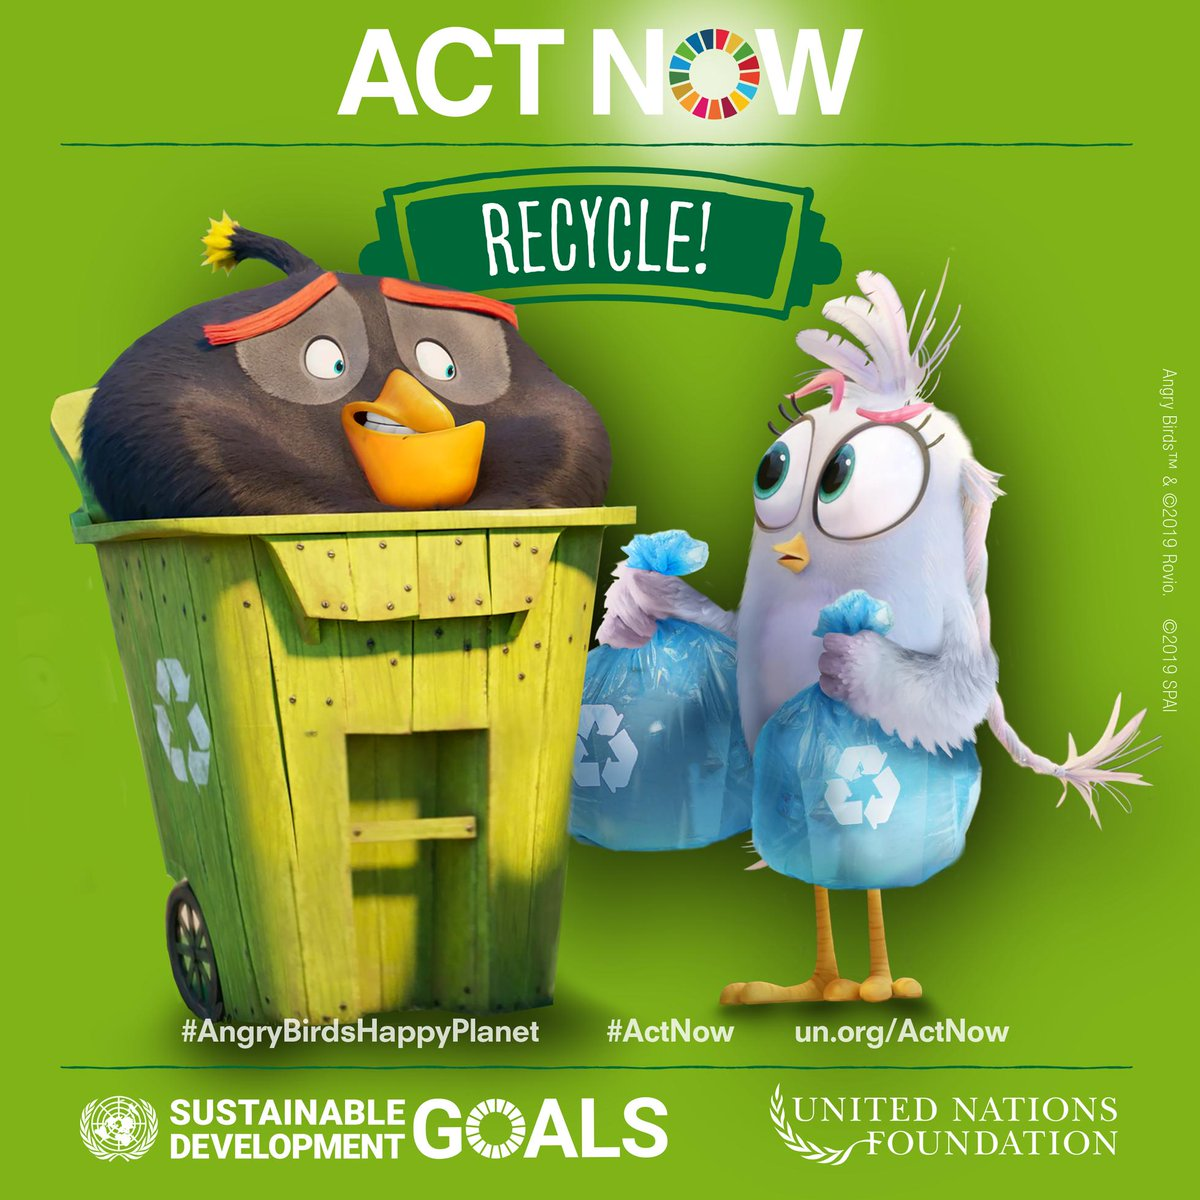 test Twitter Media - Reduce, reuse & recycle ♻️!  Most plastics, about 80%, never fully decompose, they just get smaller & smaller until they are ingested by fish & animals. By recycling, we save resources & keep landfills from growing. More info on how you can #ActNow 🔎 https://t.co/D8kPf834Ky https://t.co/lXFOluUYpb